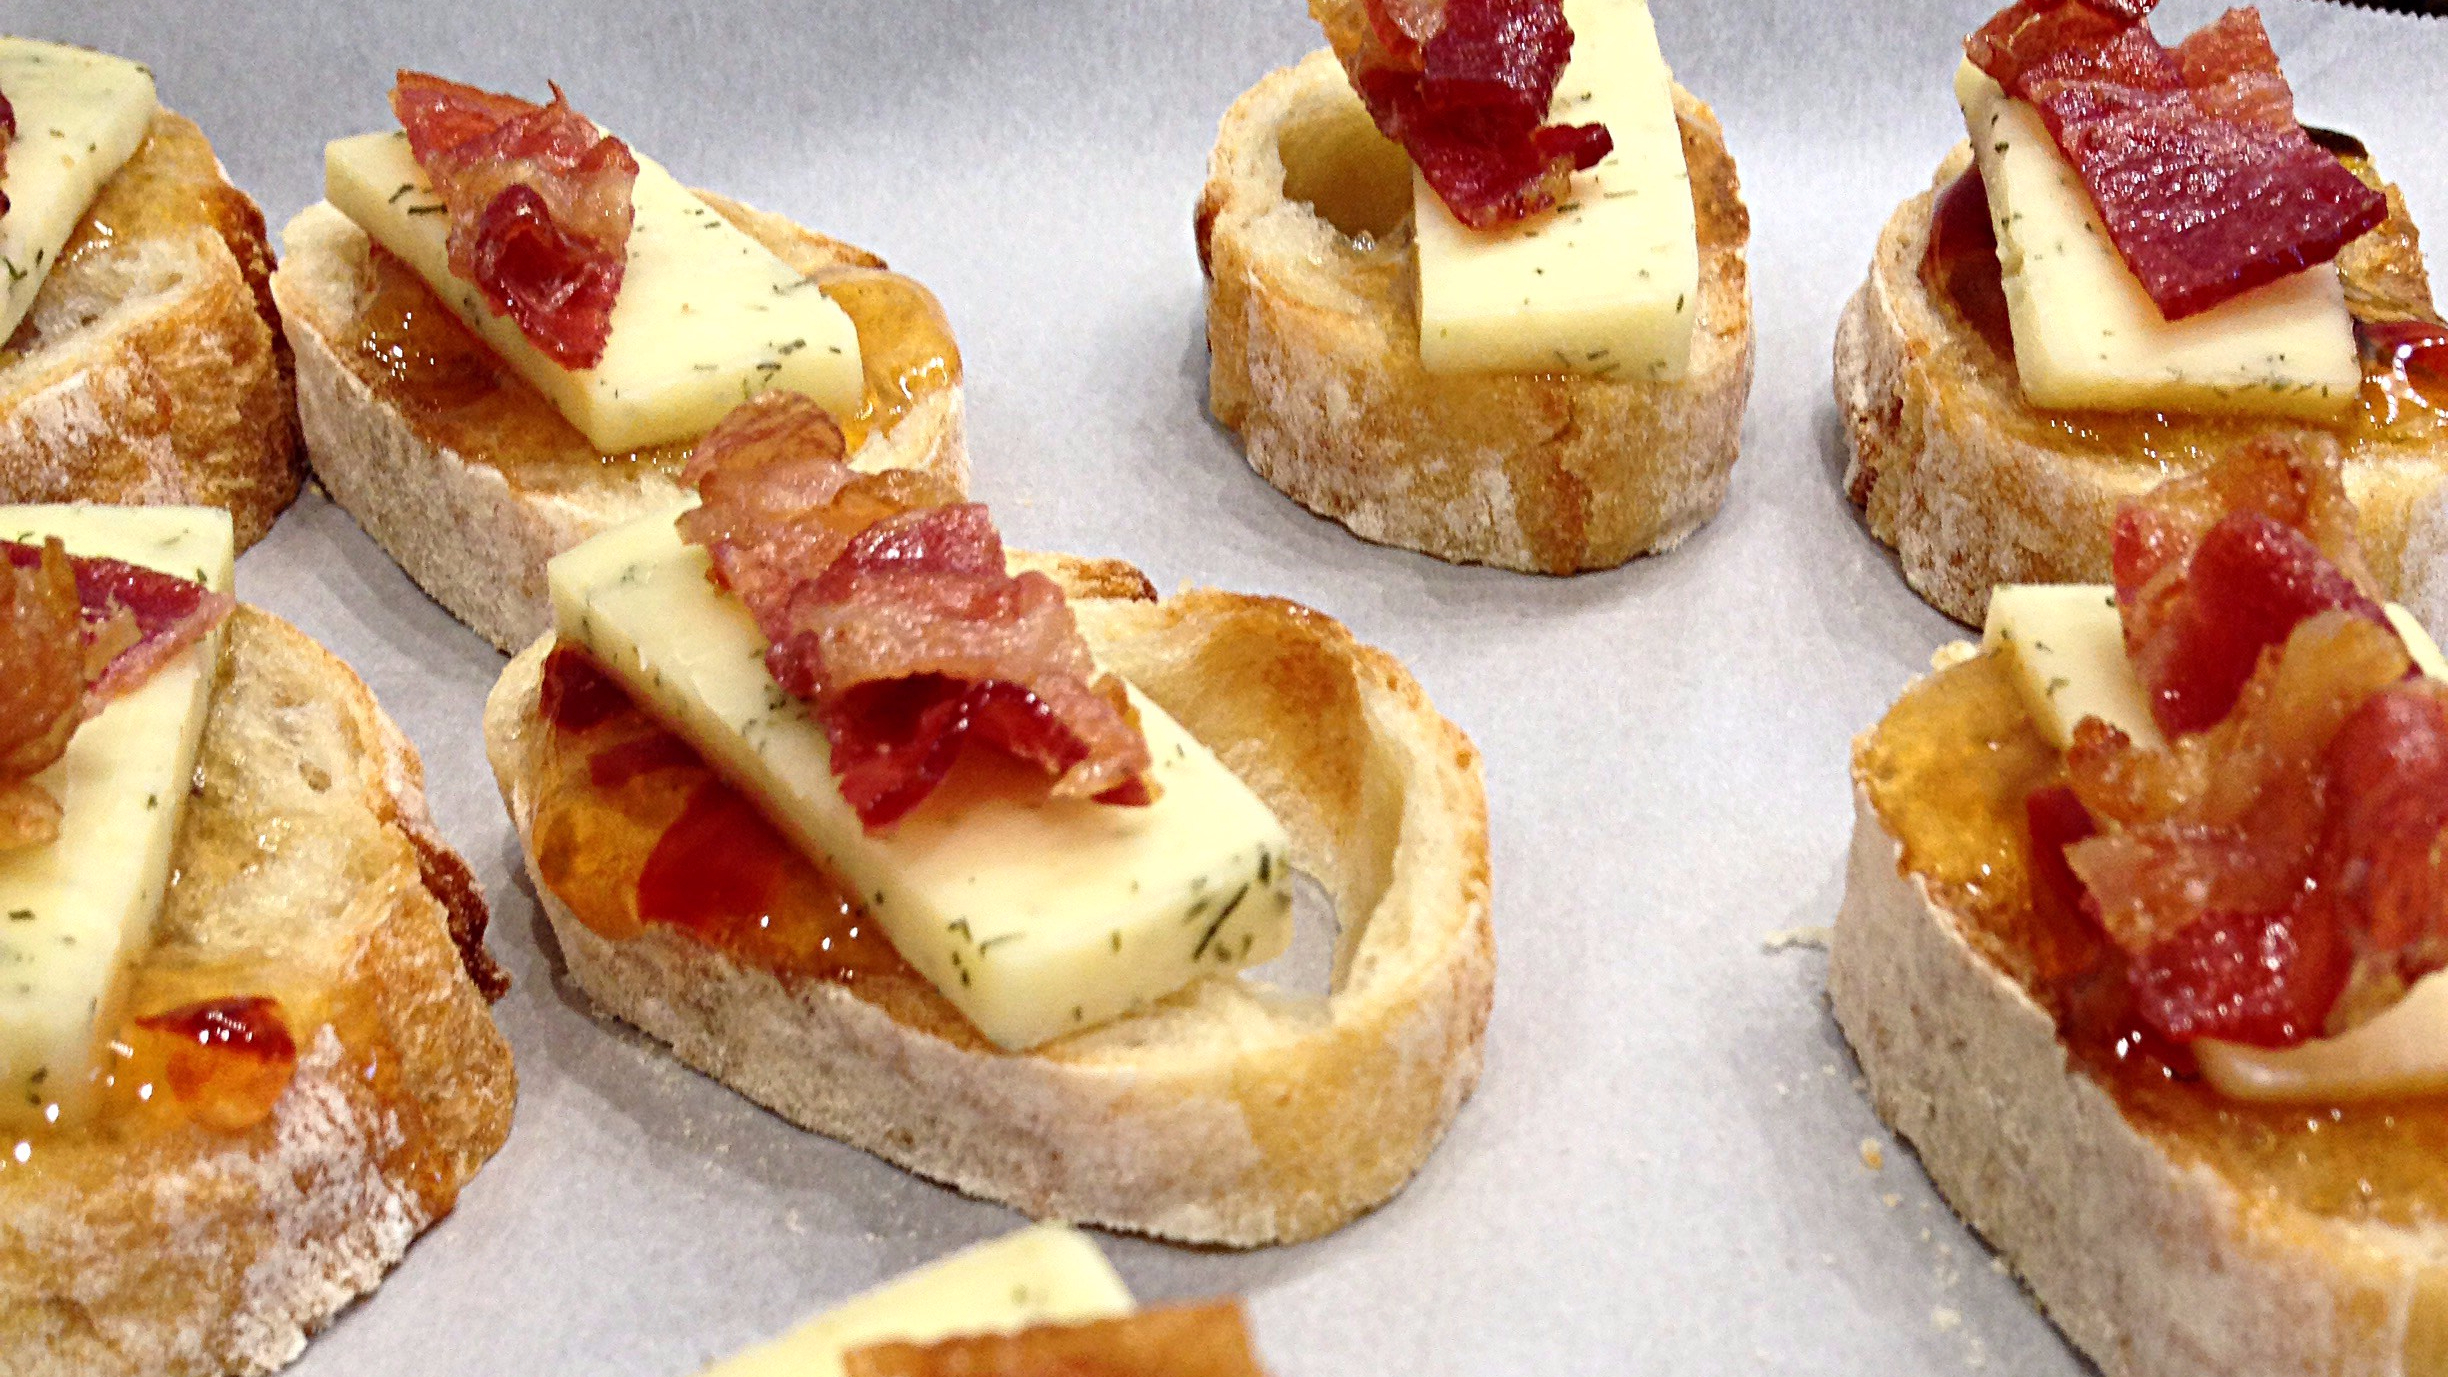 bacon crumbles are added on top of the baguette